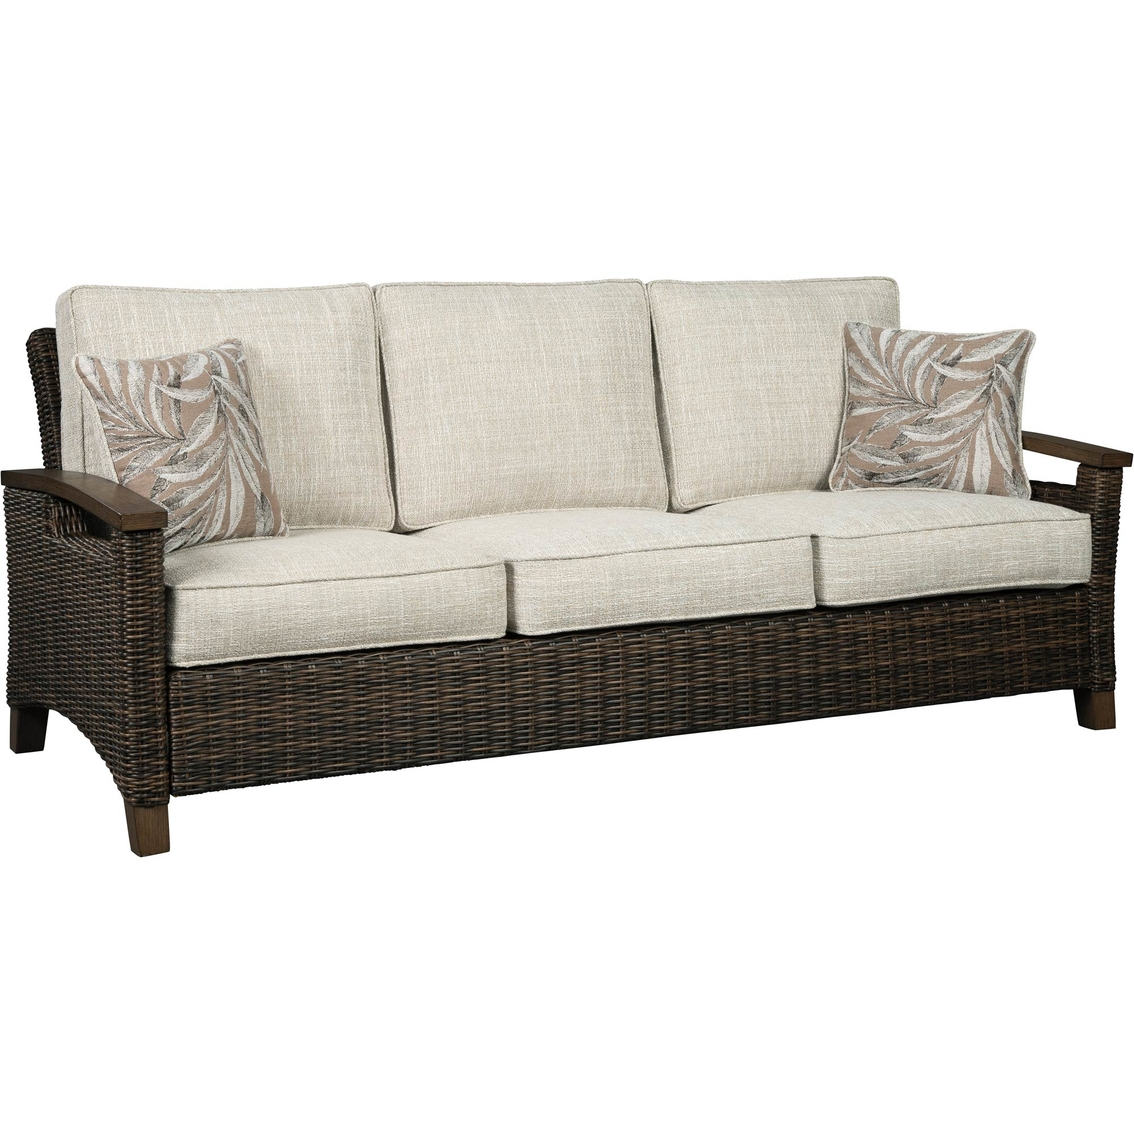 Phenomenal Ashley Paradise Trail Sofa Loveseat Cocktail Table And 2 Gmtry Best Dining Table And Chair Ideas Images Gmtryco